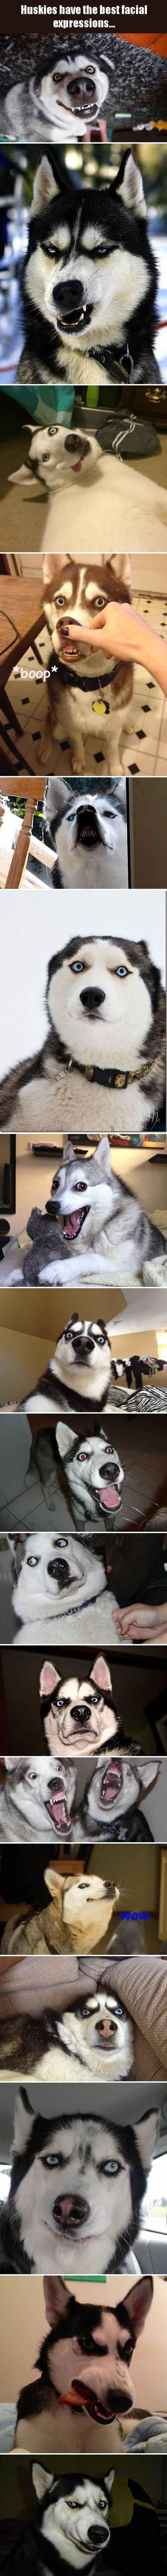 The 2nd picture looks like a Siberian Husky Elvis. lol